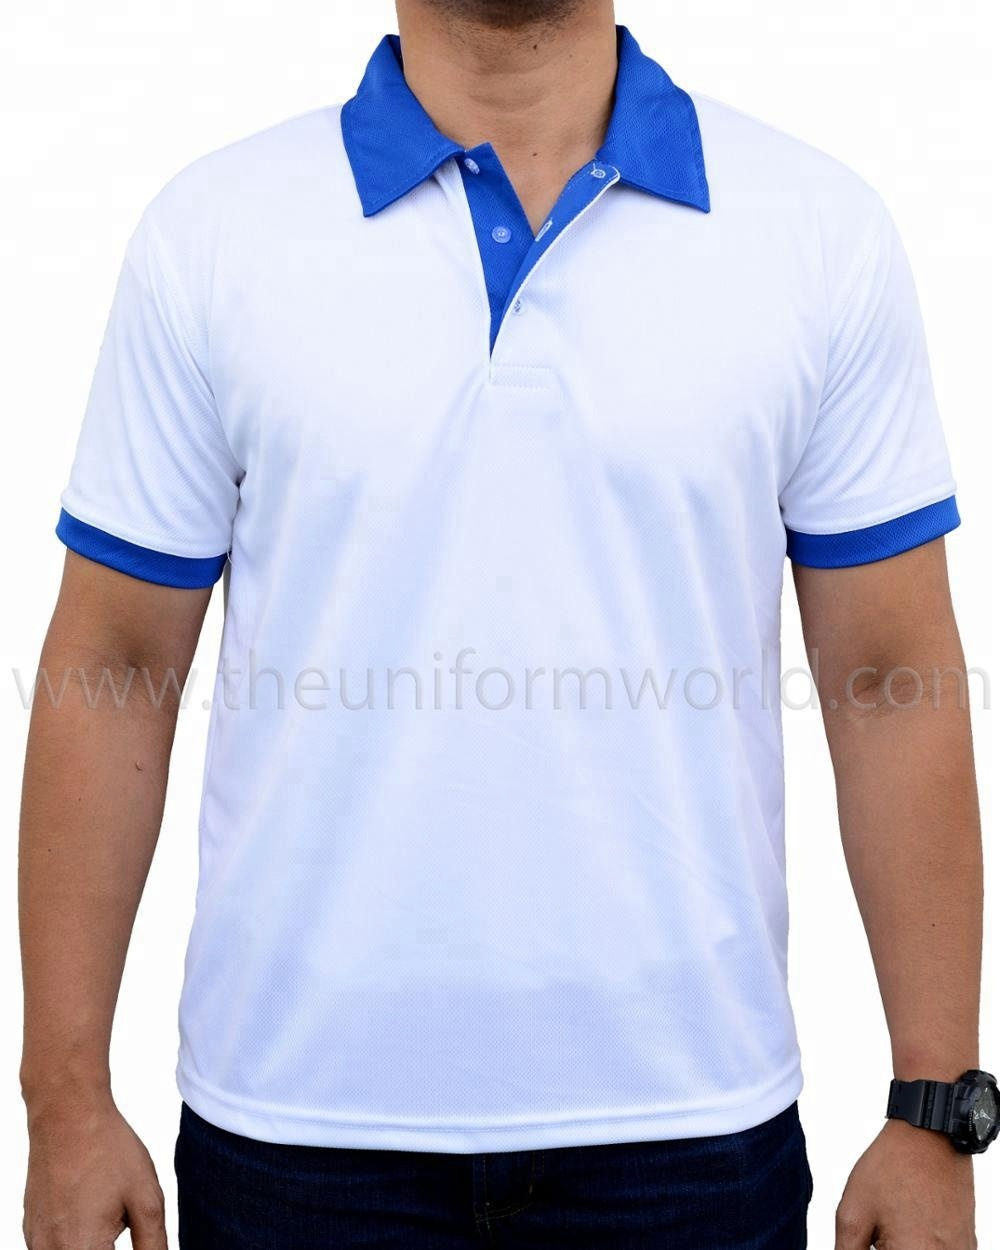 56385f67a United Arab Emirates Uniform Golf Shirt, United Arab Emirates Uniform Golf  Shirt Manufacturers and Suppliers on Alibaba.com